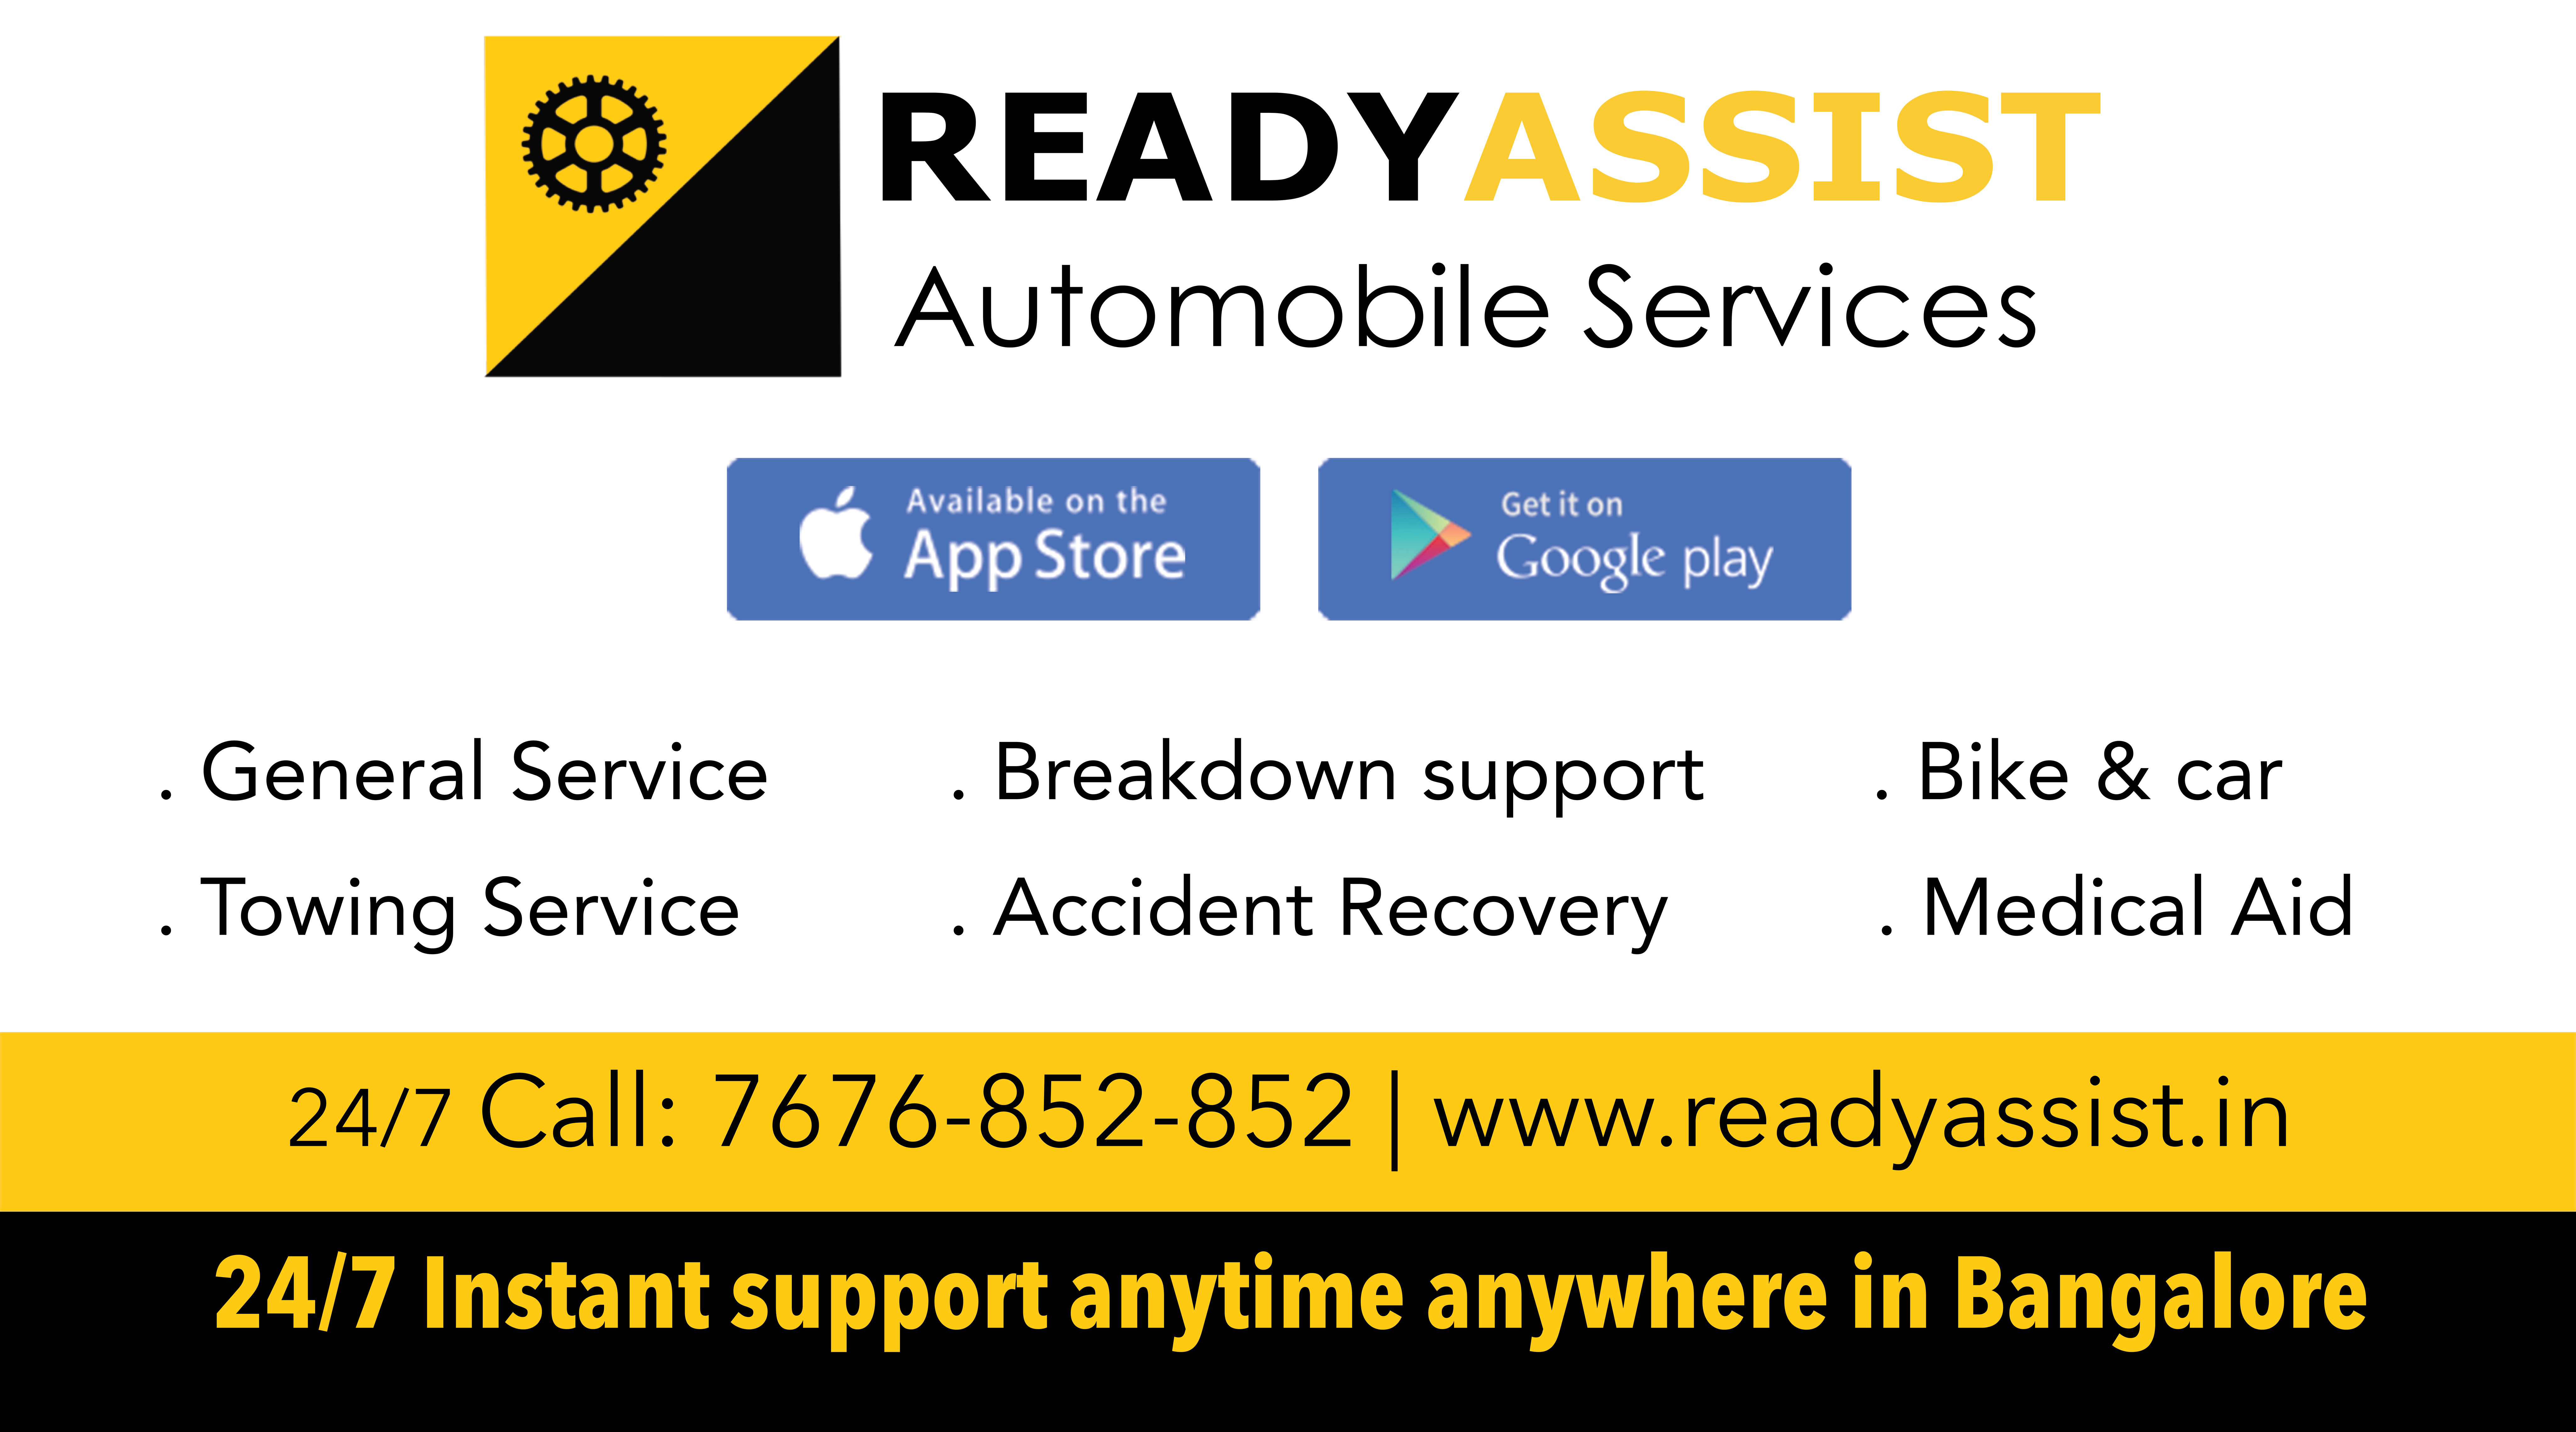 ReadyAssist